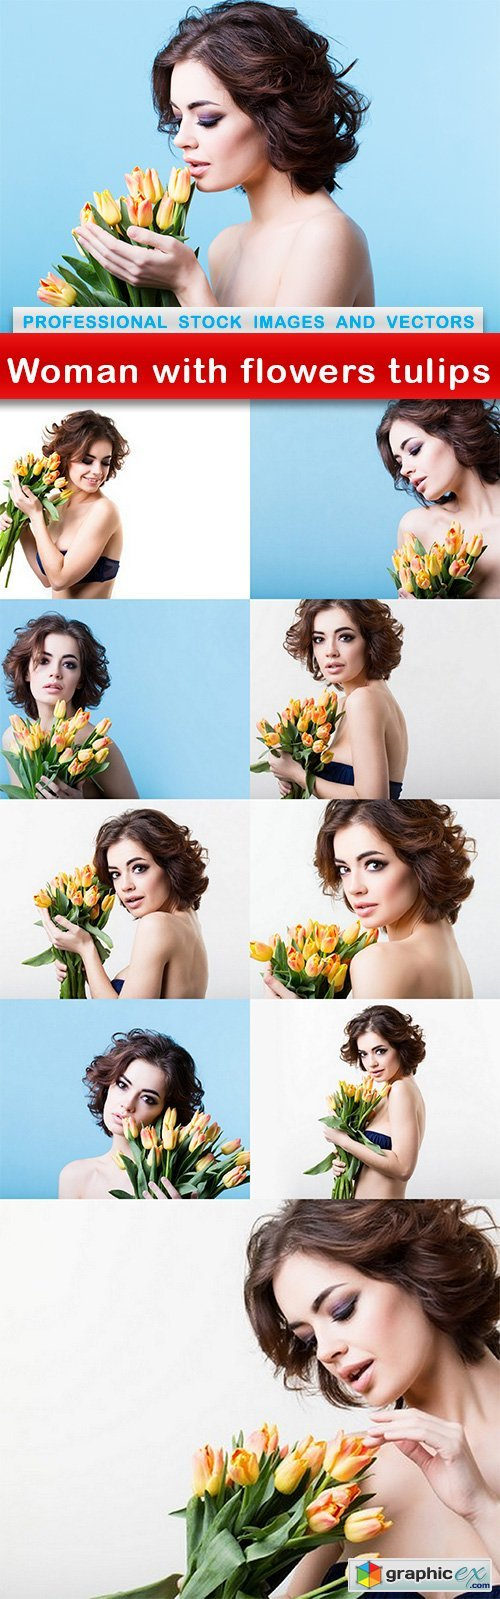 Woman with flowers tulips - 10 UHQ JPEG